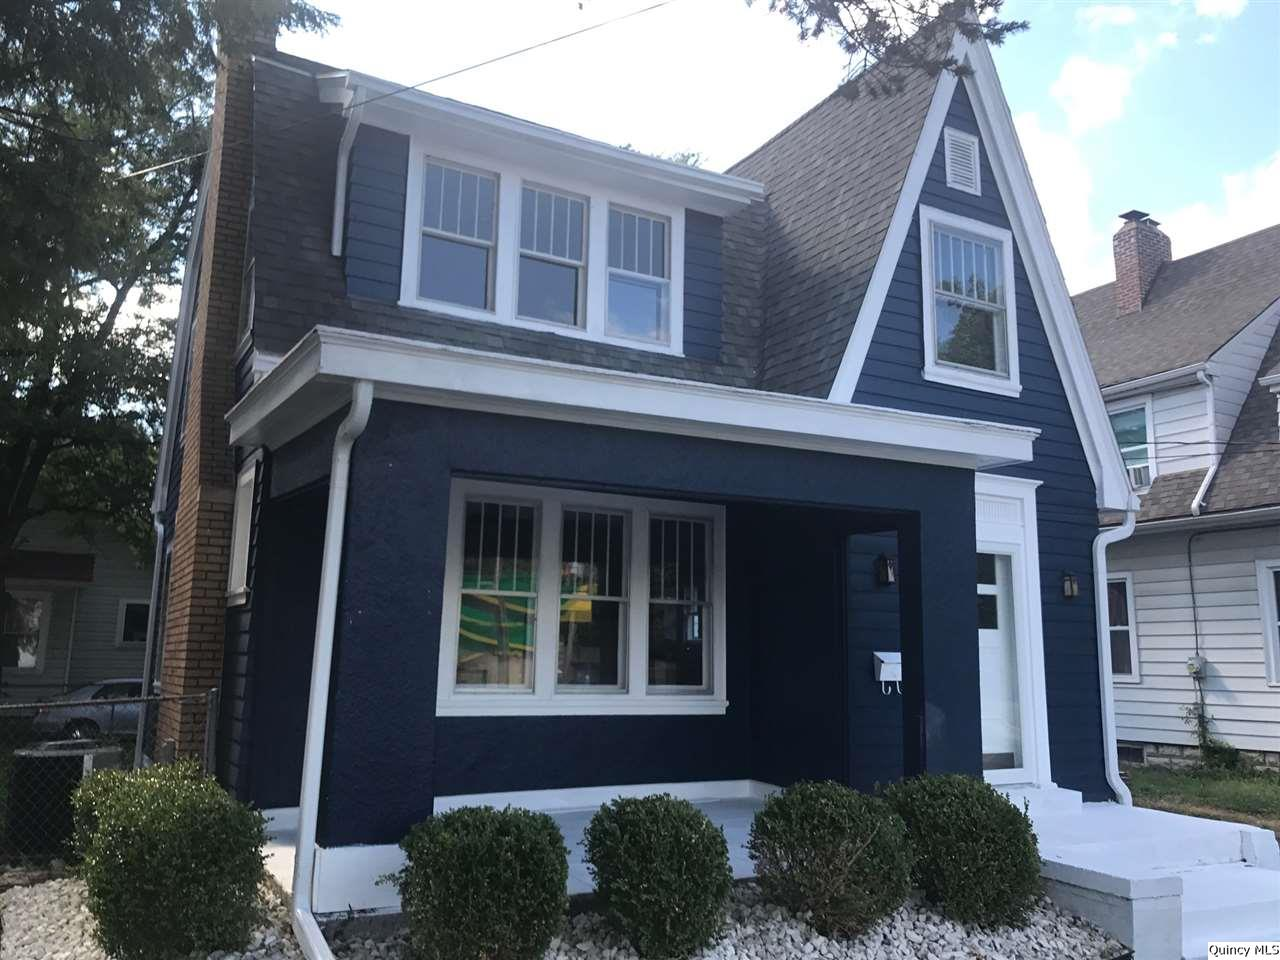 428 S 24th, Quincy